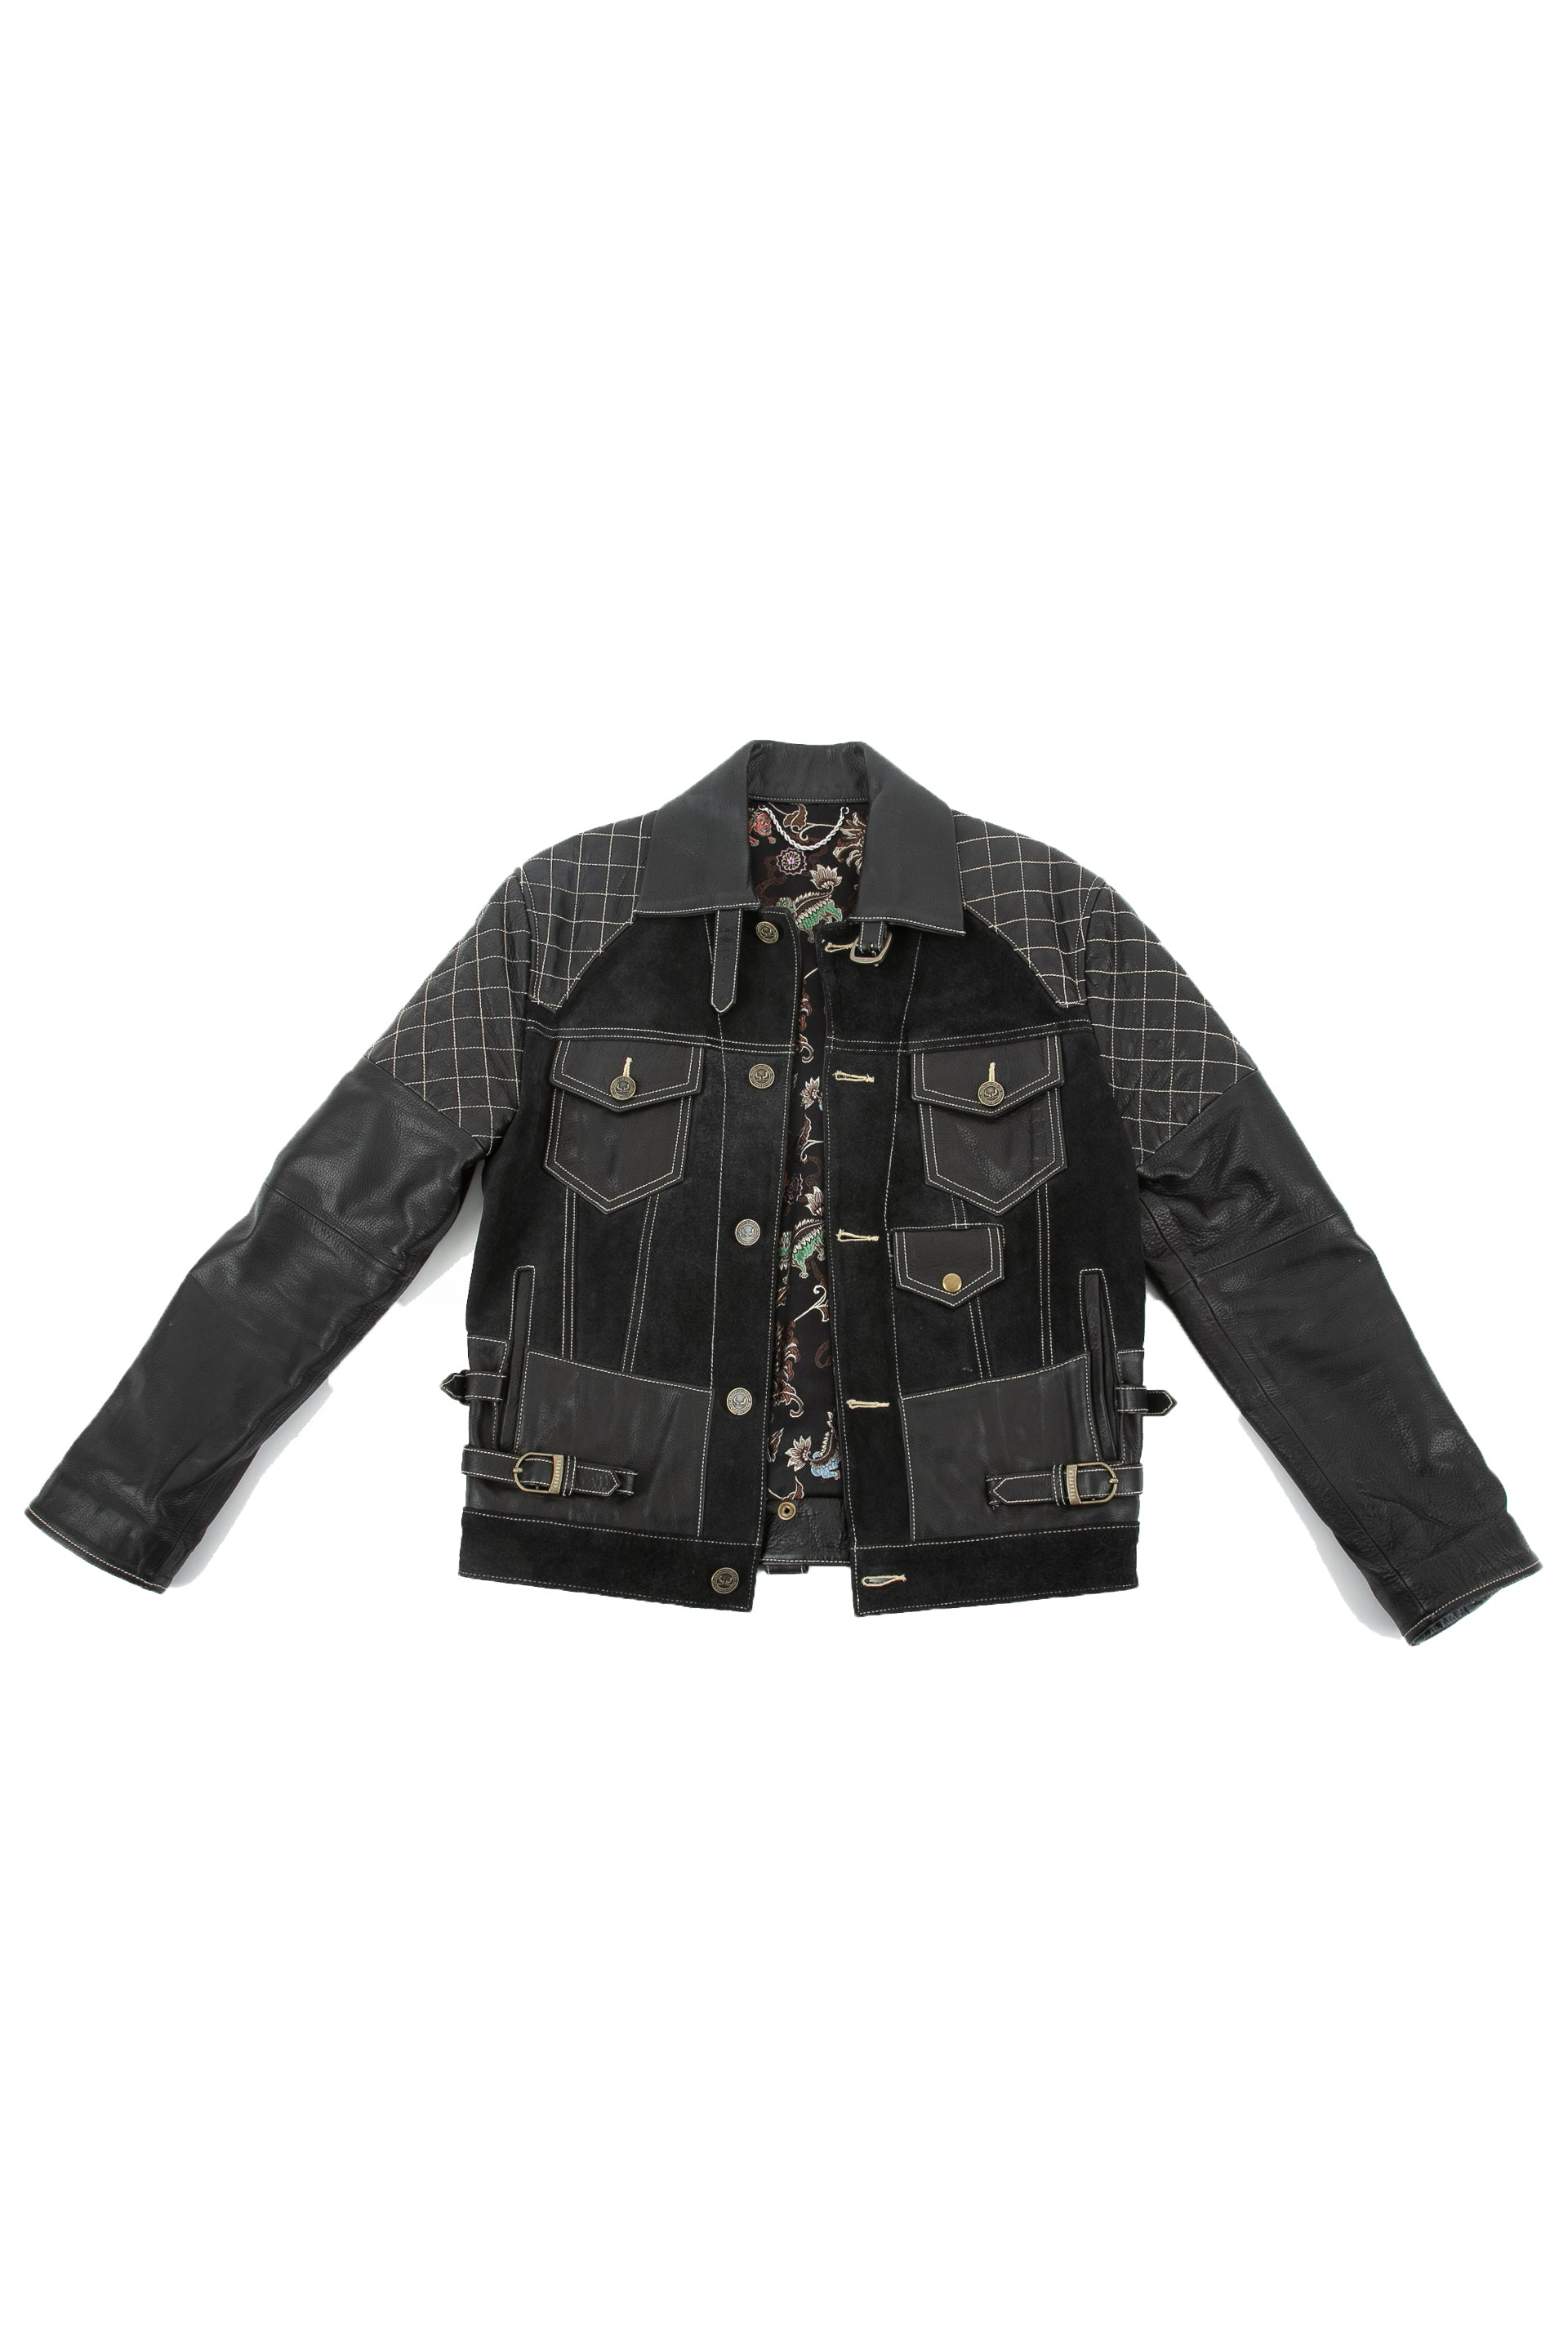 Front of Emperor leather jacket